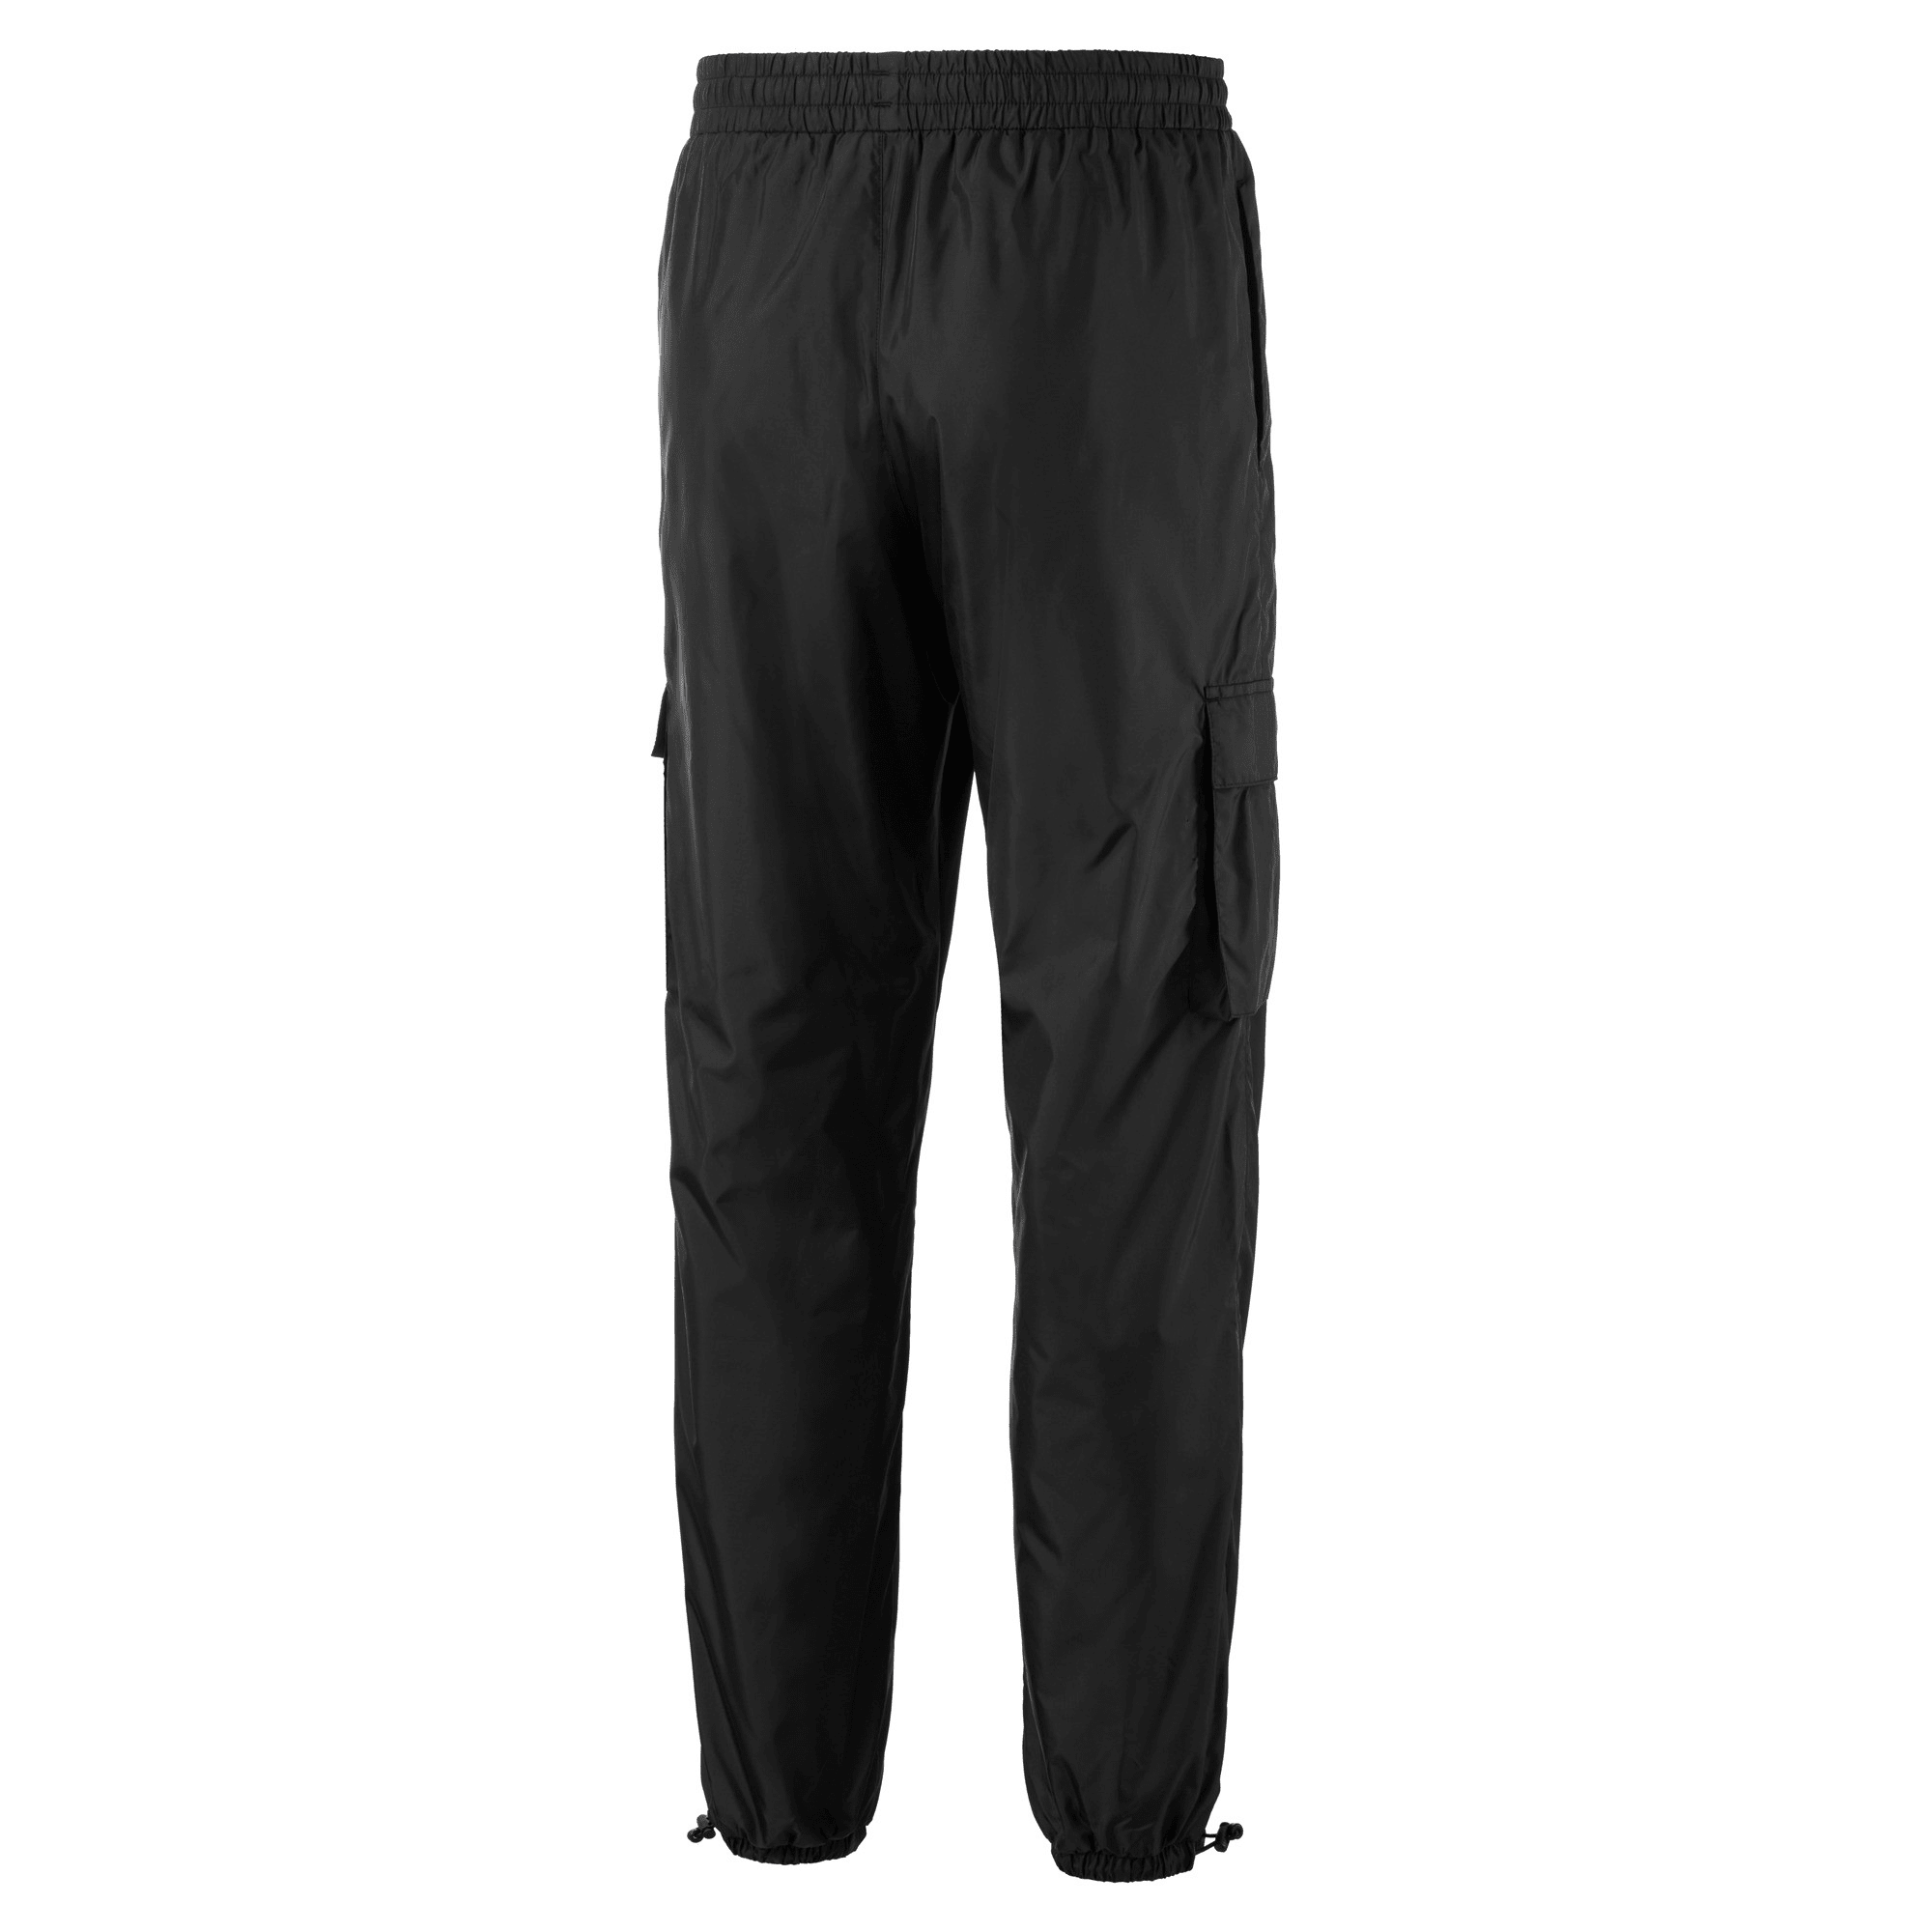 Thumbnail 2 of Lightweight Woven Men's Pants, Puma Black, medium